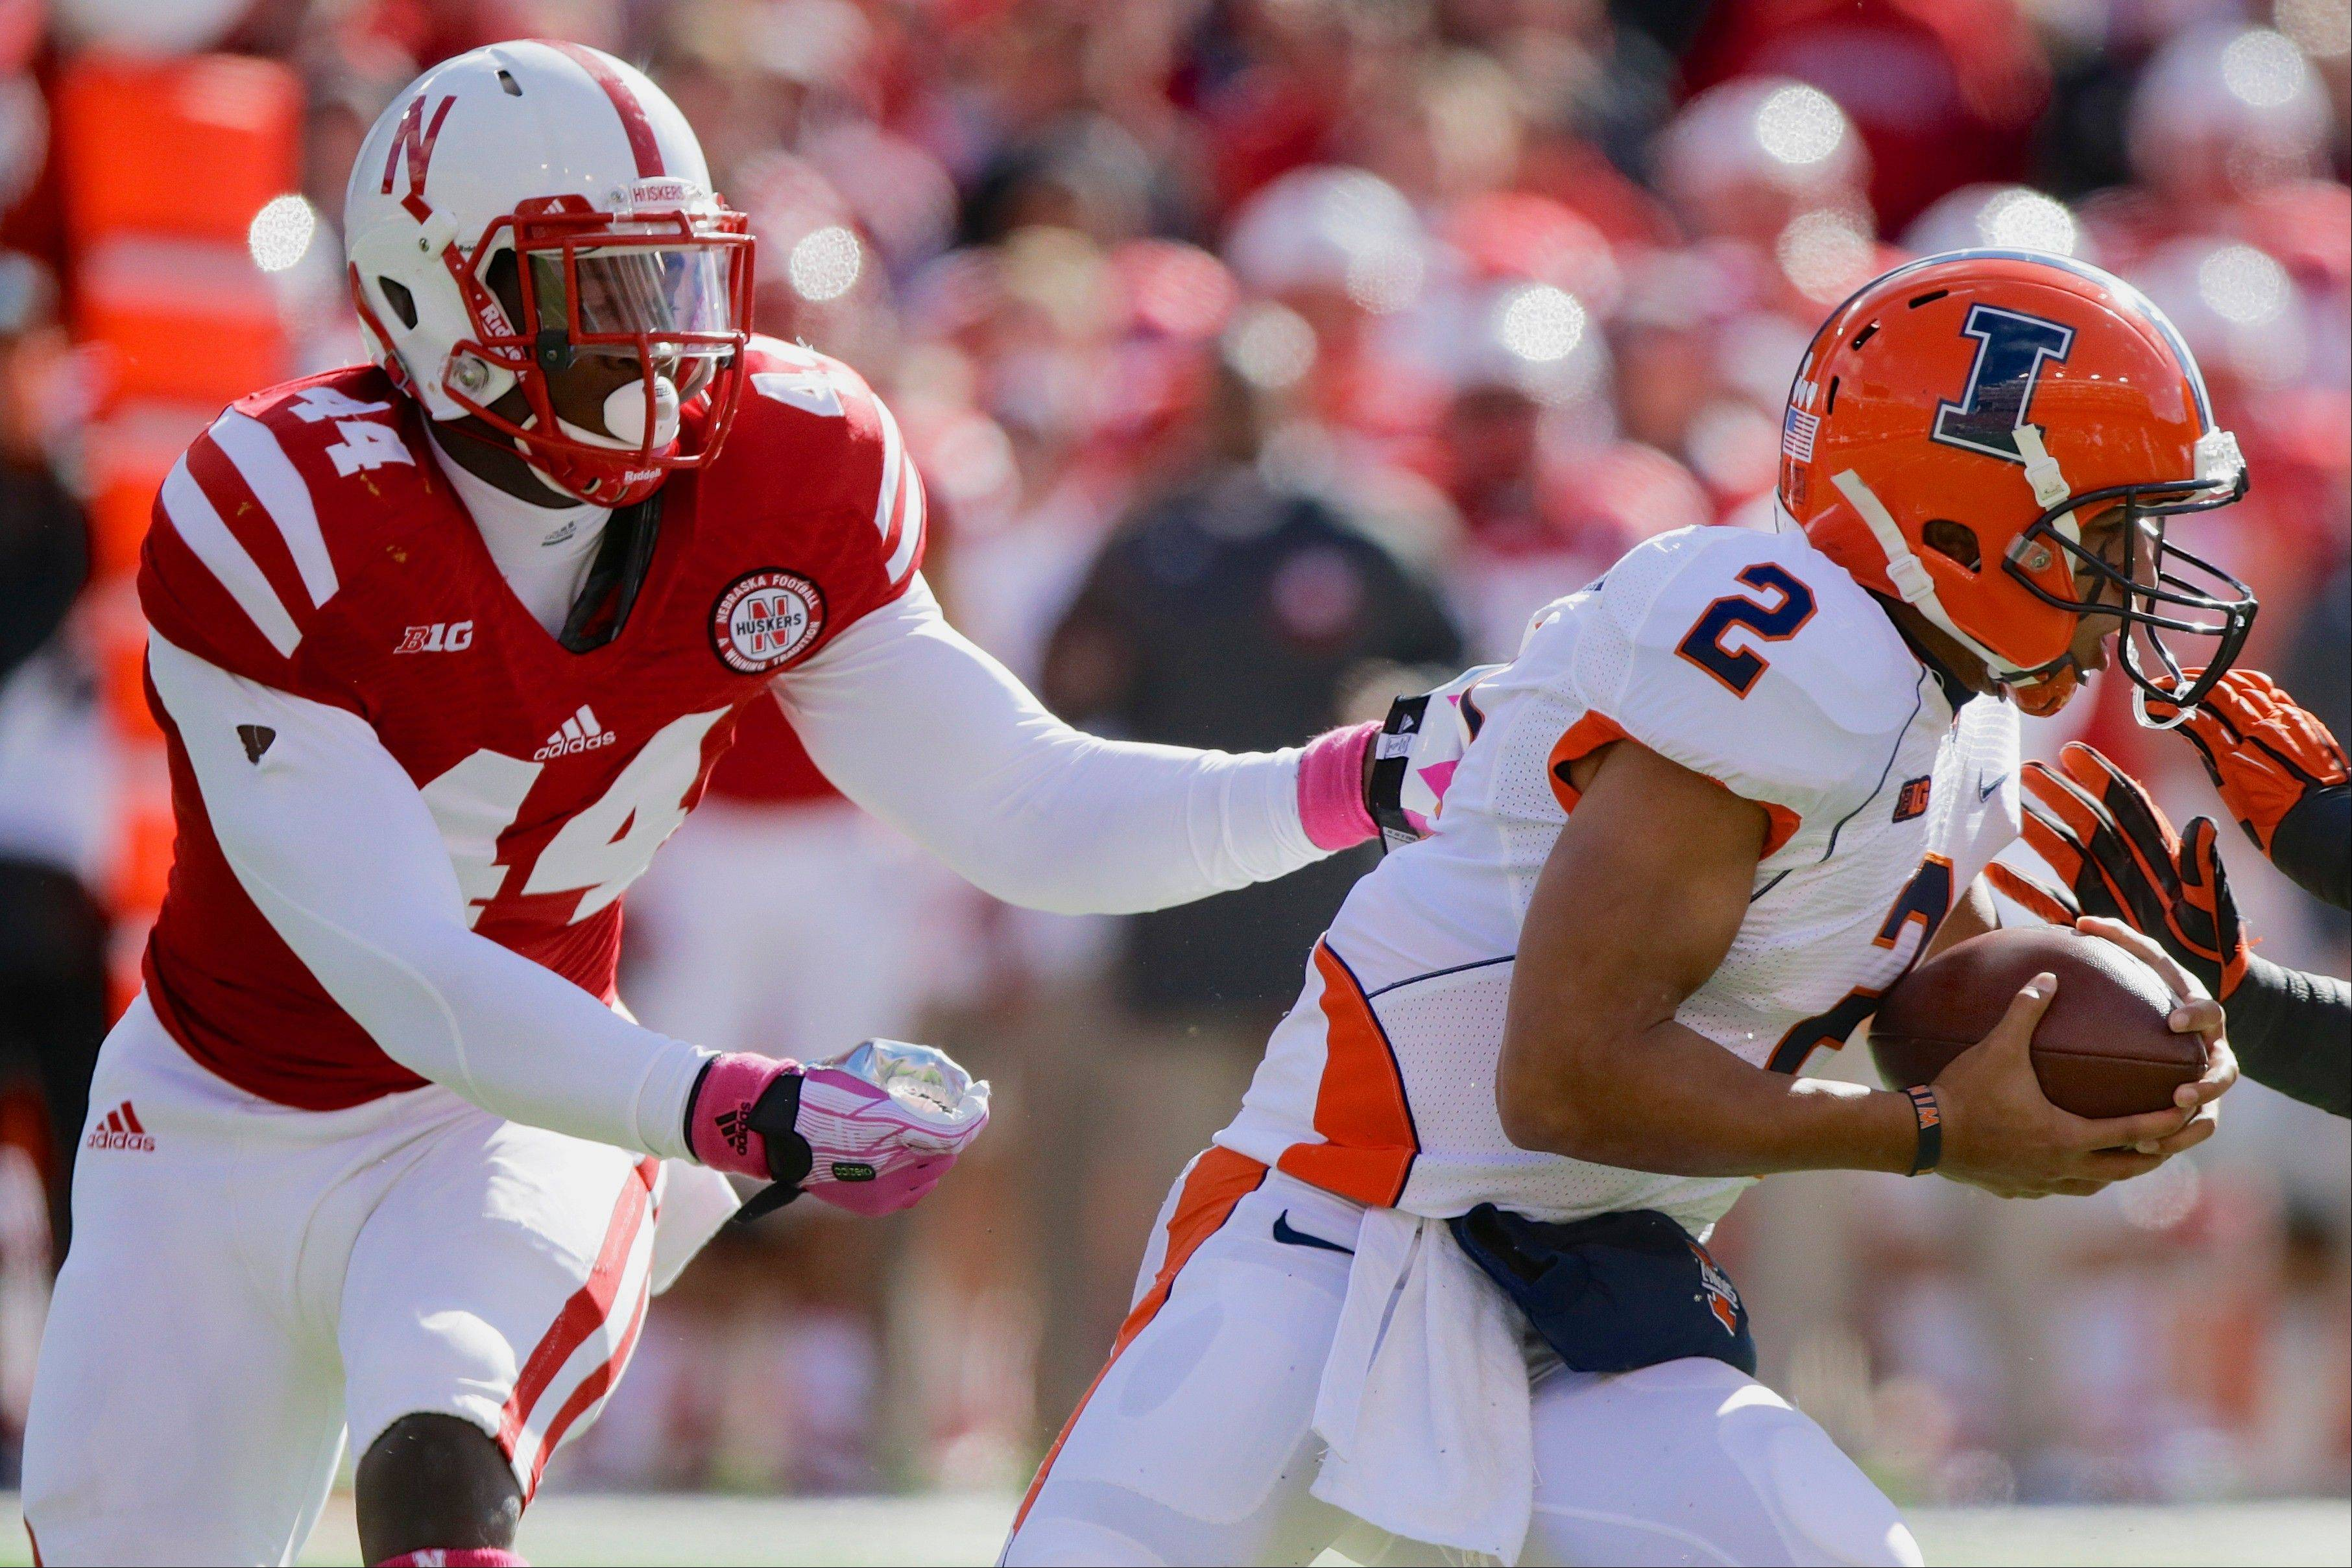 Husker hopes to show Boilermakers what they're missing